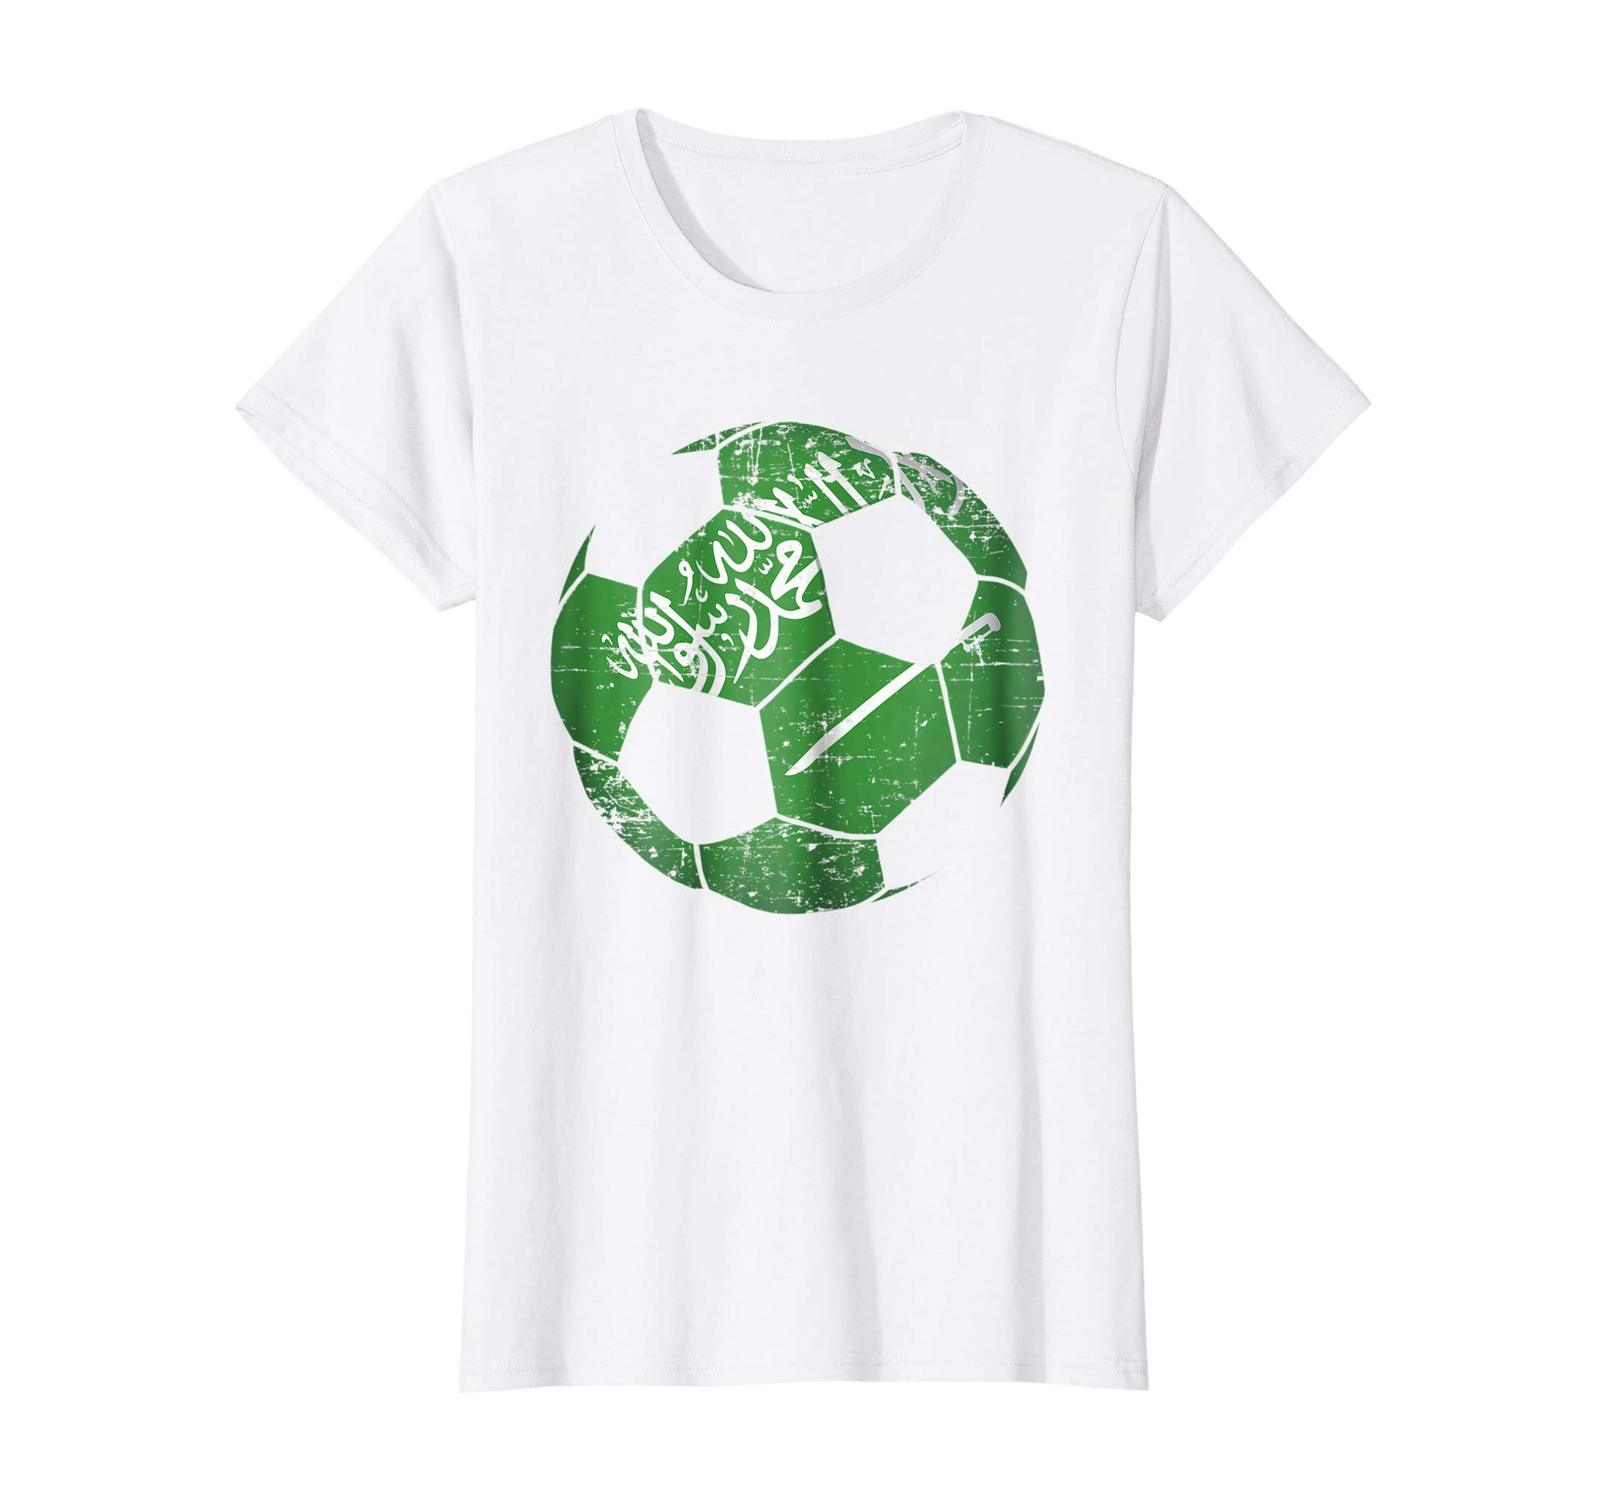 8b2333e1126 Sport Shirts - Saudi Arabia Soccer Ball Flag and 50 similar items.  A1zdawwgrcl. cla 7c2140 2000 7c91svhwivh l.png 7c0 0 2140 2000 0.0 0.0  2140.0